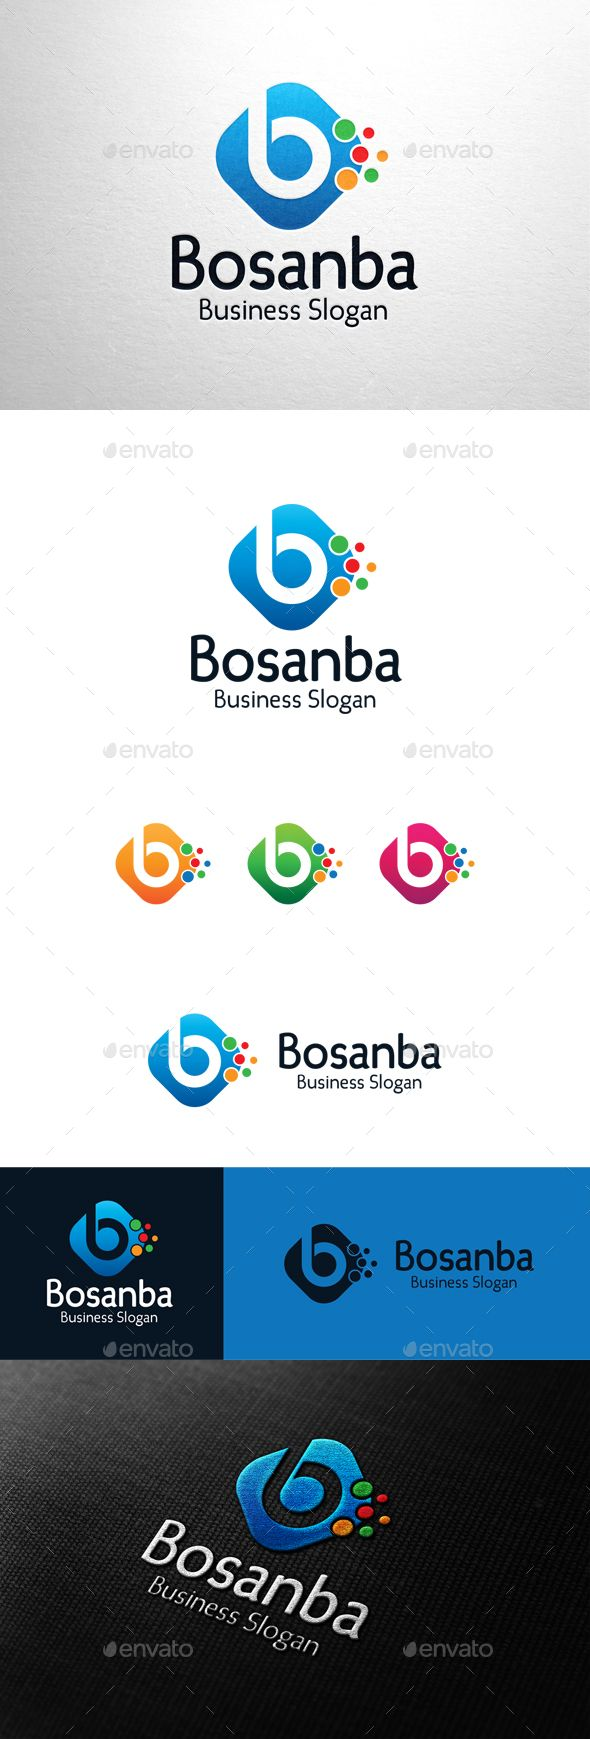 Bosanba, Letter B Logo — Photoshop PSD #d logo #bubble • Available here → https://graphicriver.net/item/bosanba-letter-b-logo/16837267?ref=pxcr